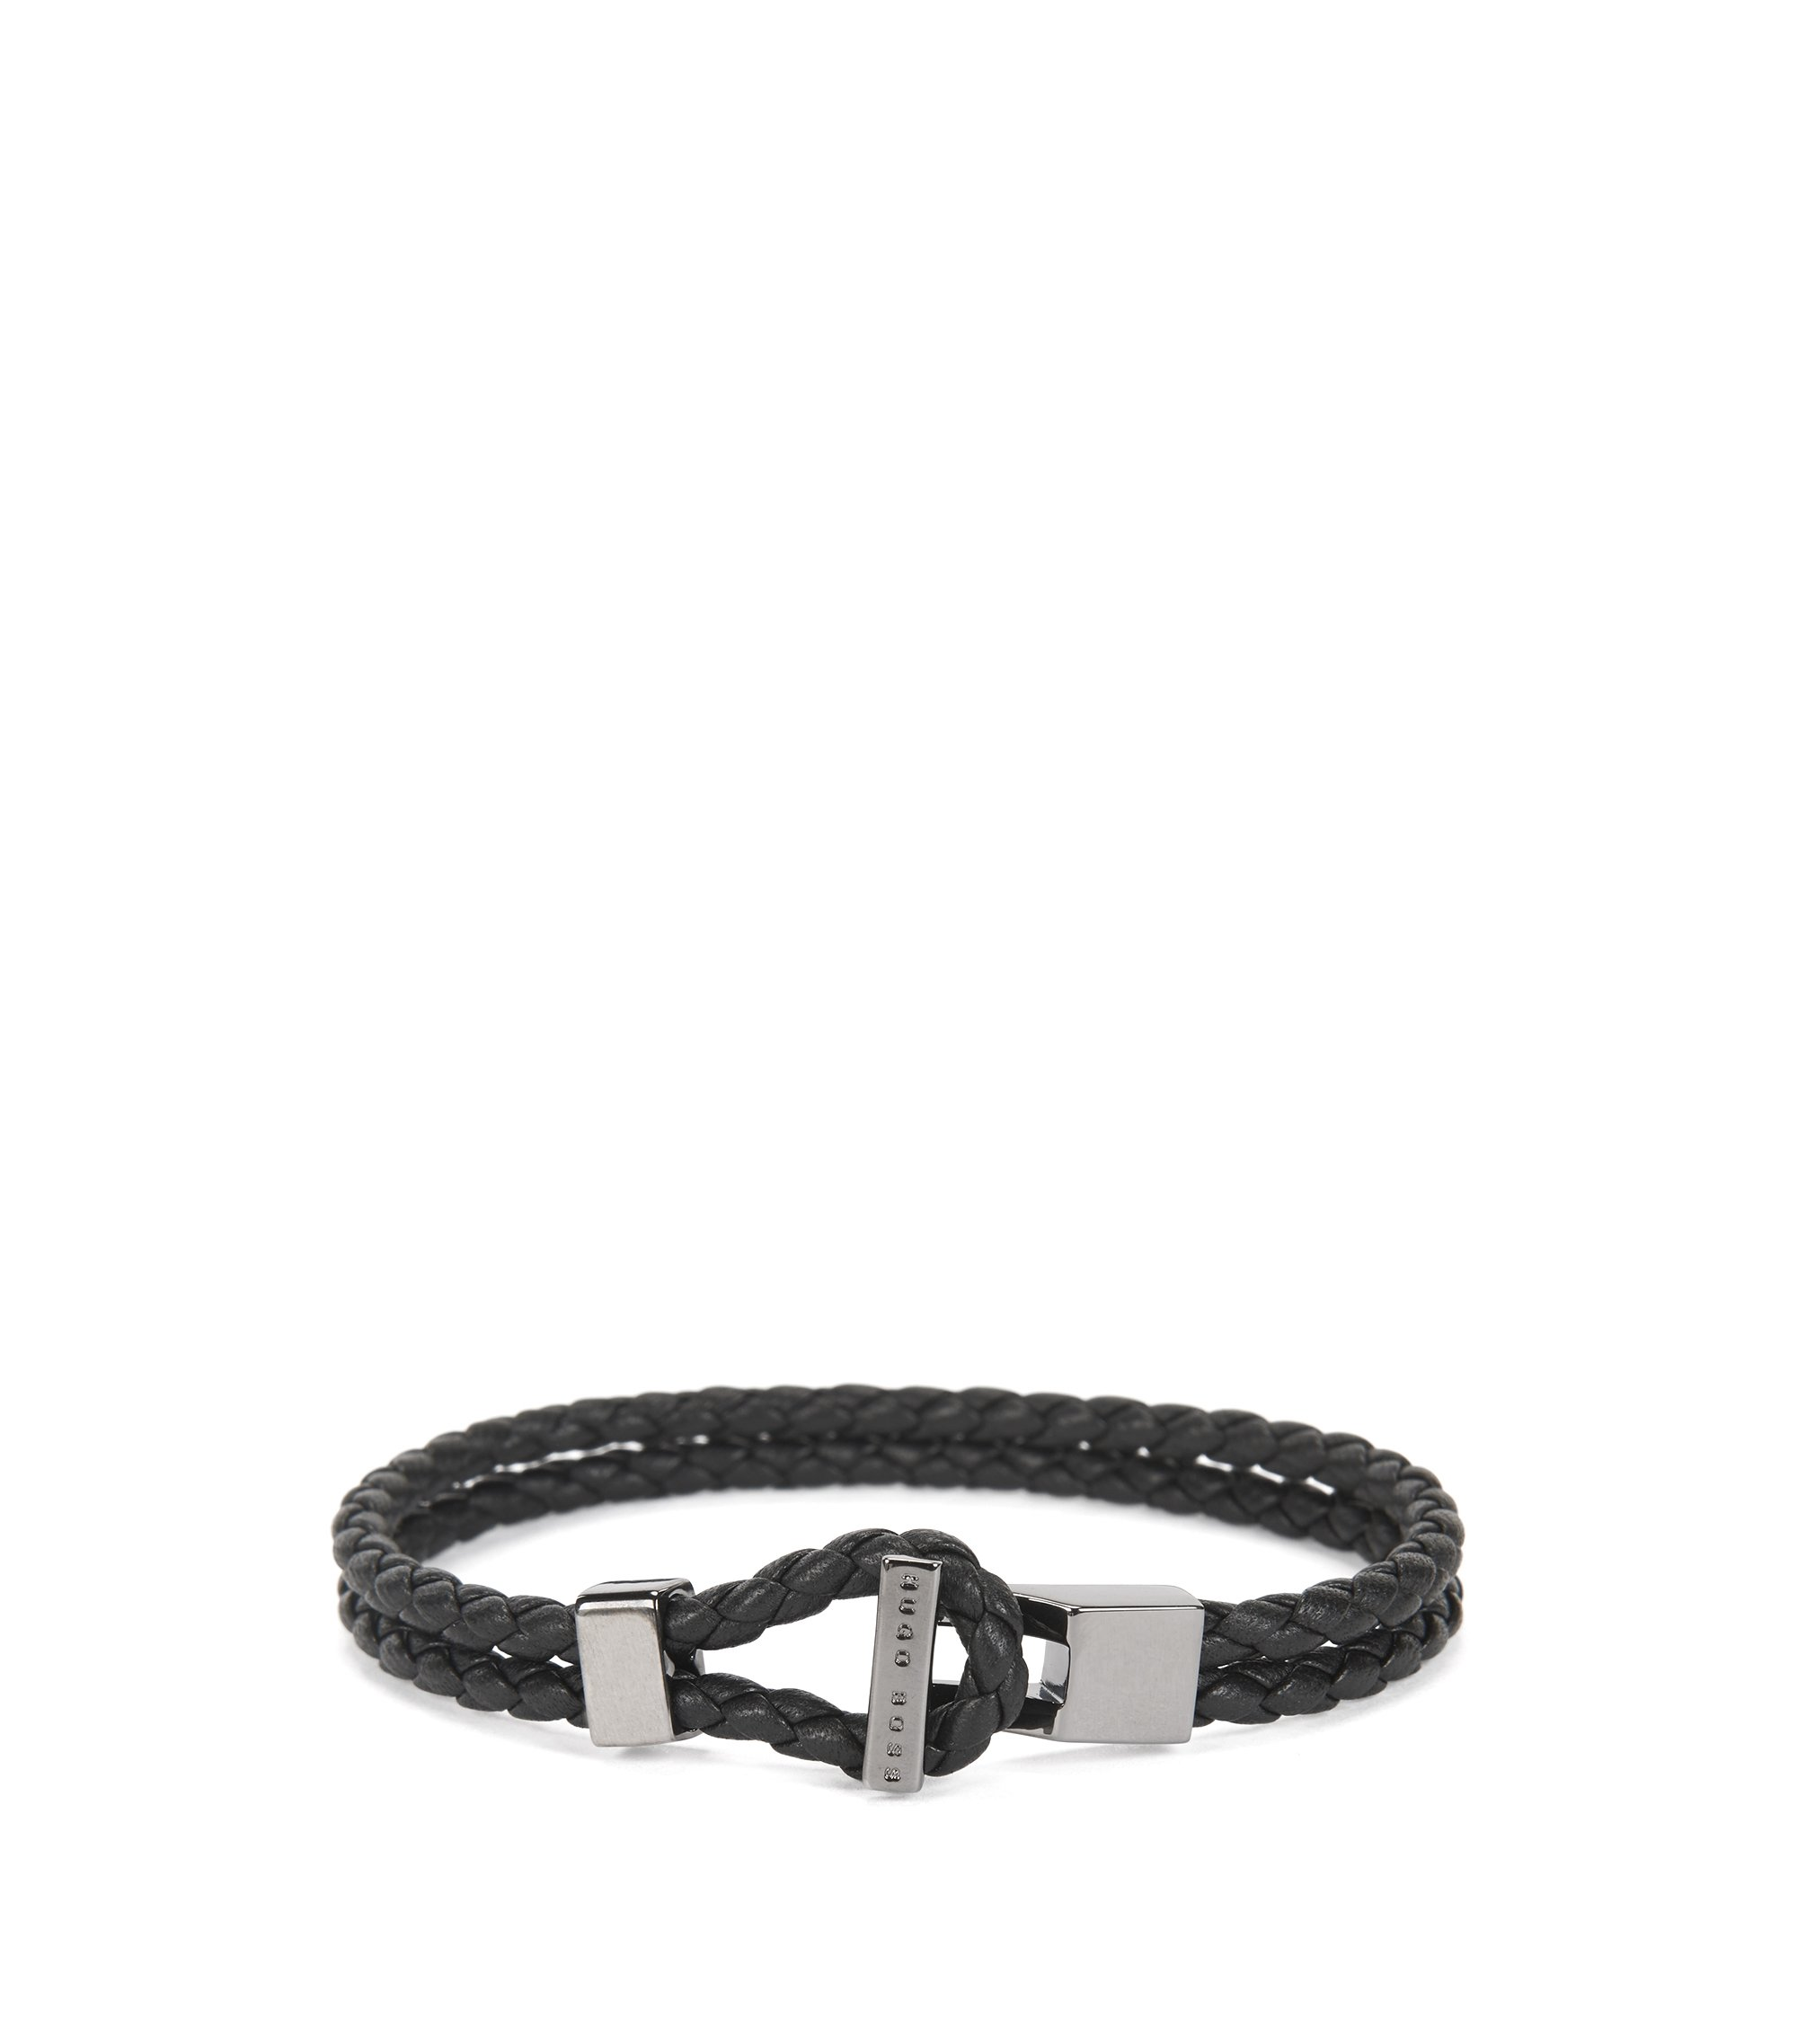 Leather bracelet with gunmetal hardware, Black